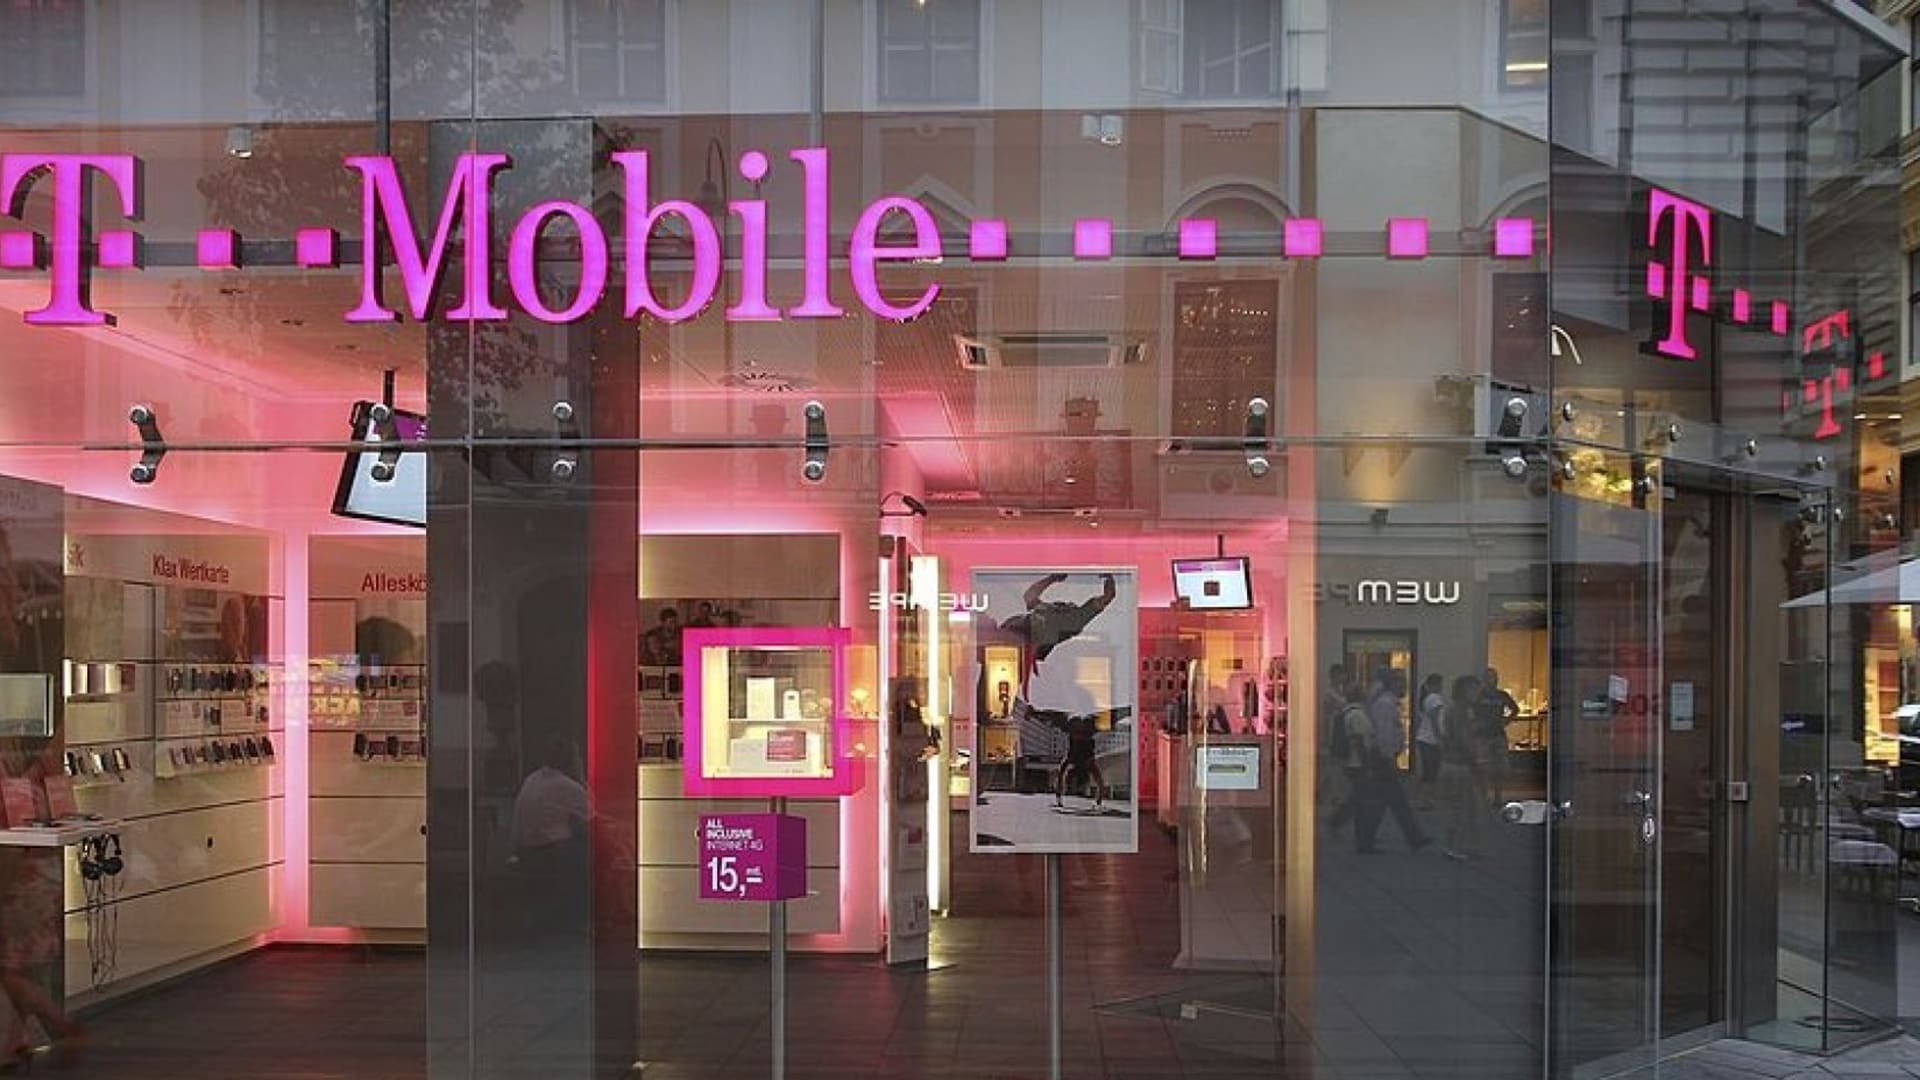 T-Mobile Retail Stores Are Downplaying Its Massive Data Breach